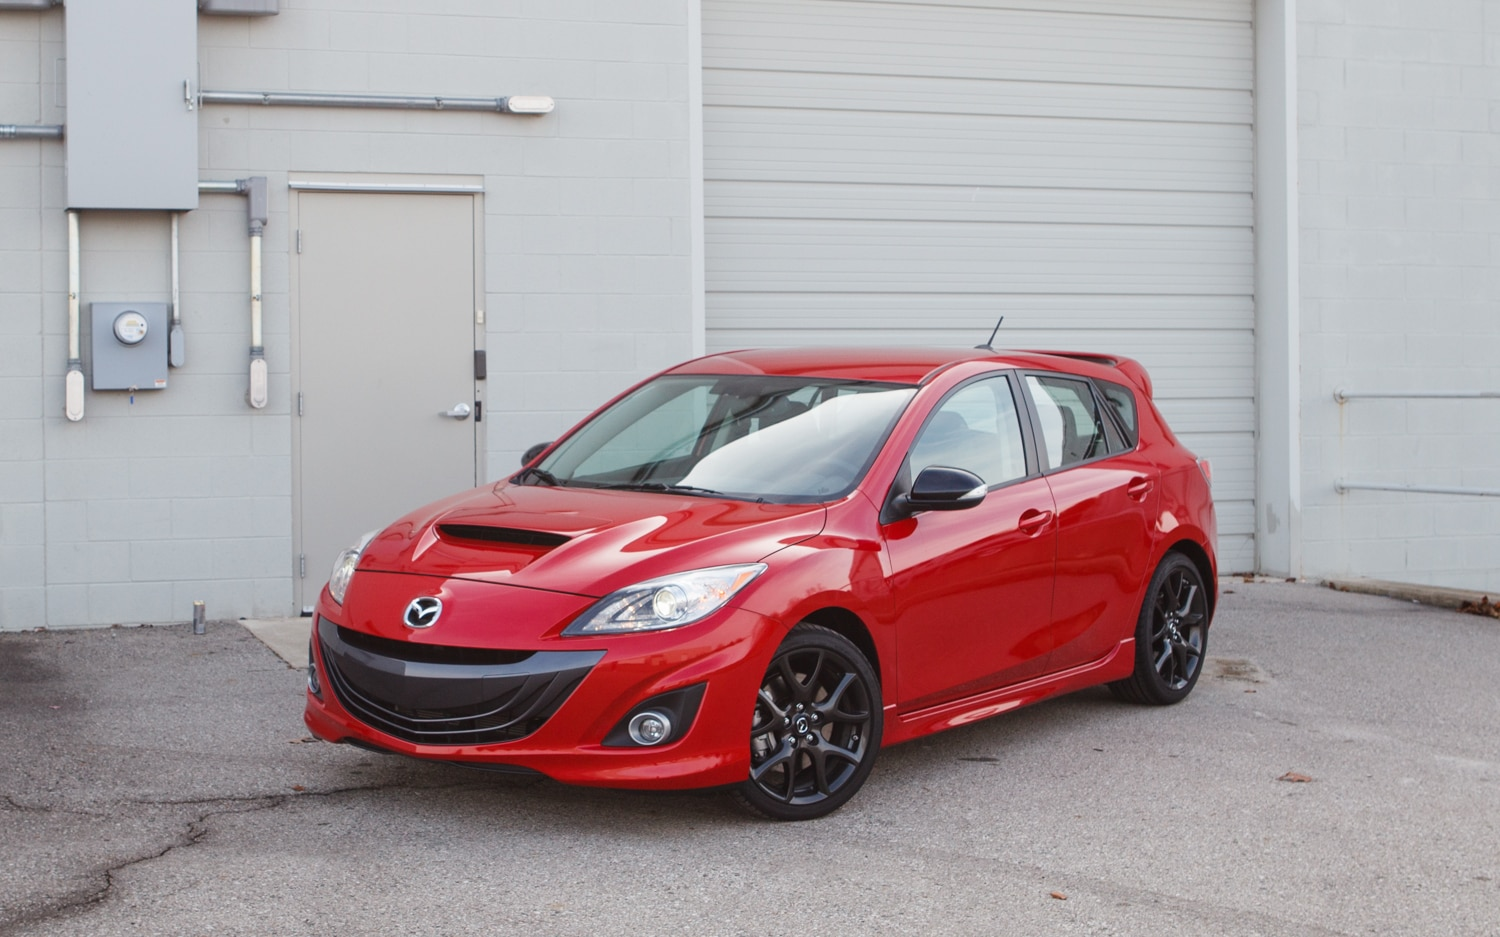 2013 Mazdaspeed 3 Front Left View 11